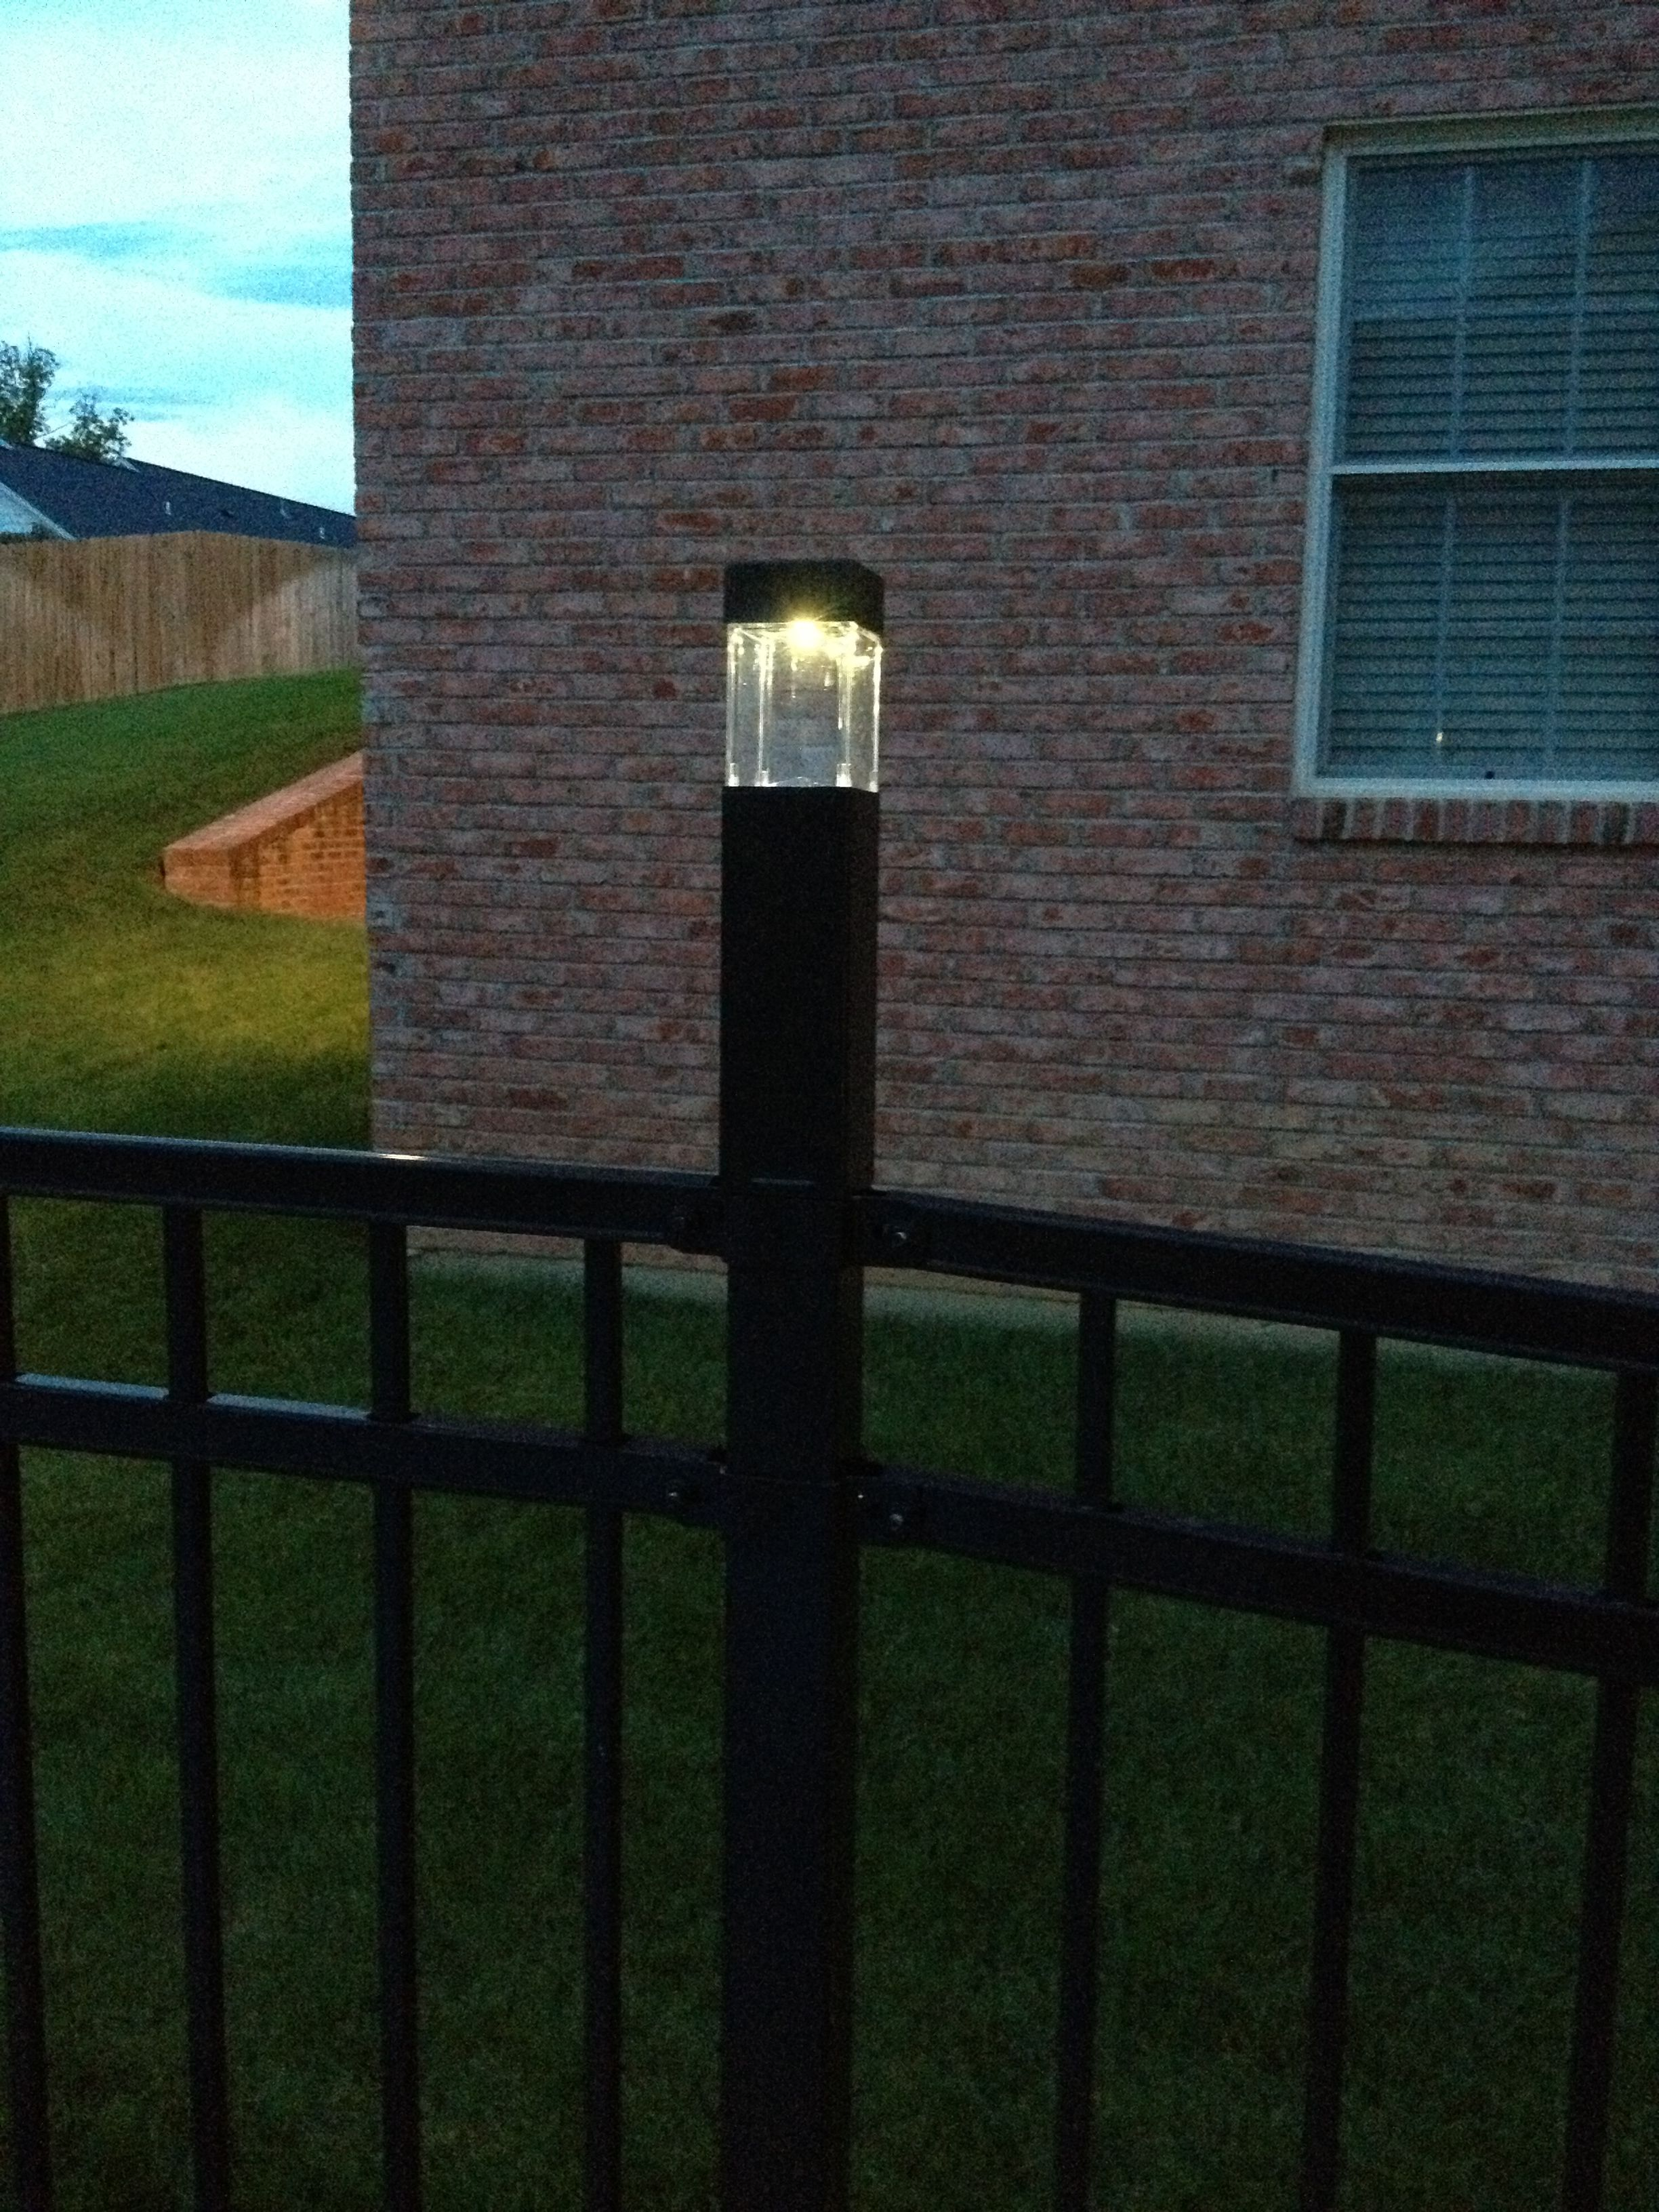 Pin By Richard Lynn On Home Improvement Outdoor Post Lights Solar Lamp Post Fence Post Caps Solar lights for fence posts